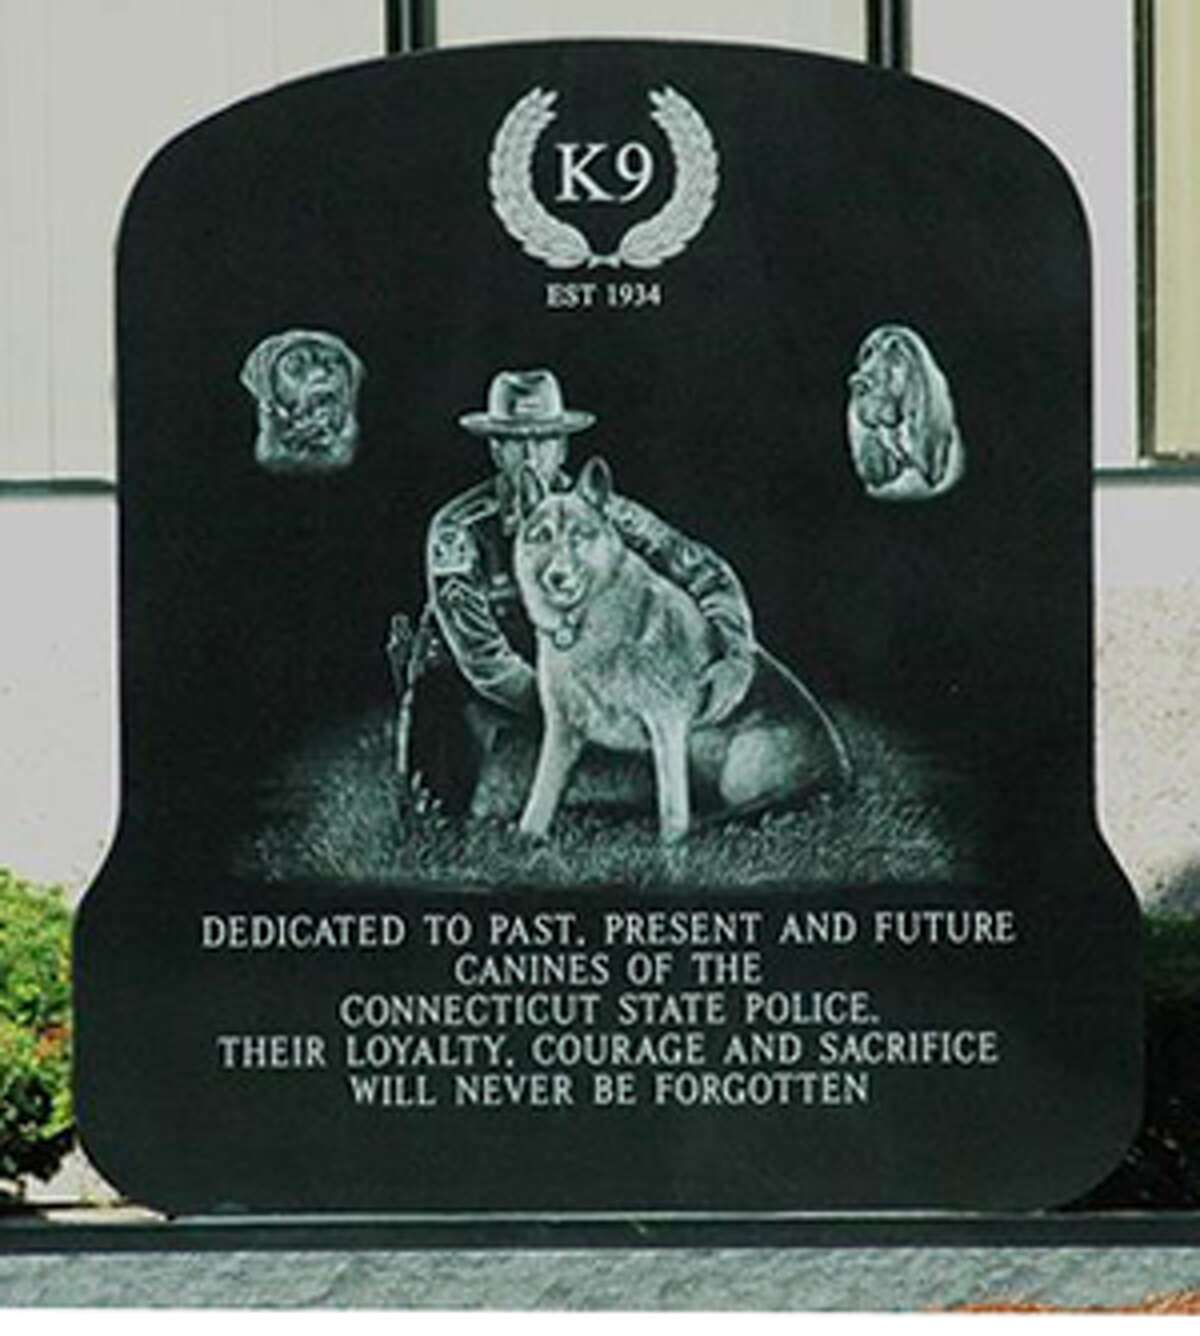 The Connecticut State Police canine memorial recently was unveiled at State Police headquarters in Middletown.